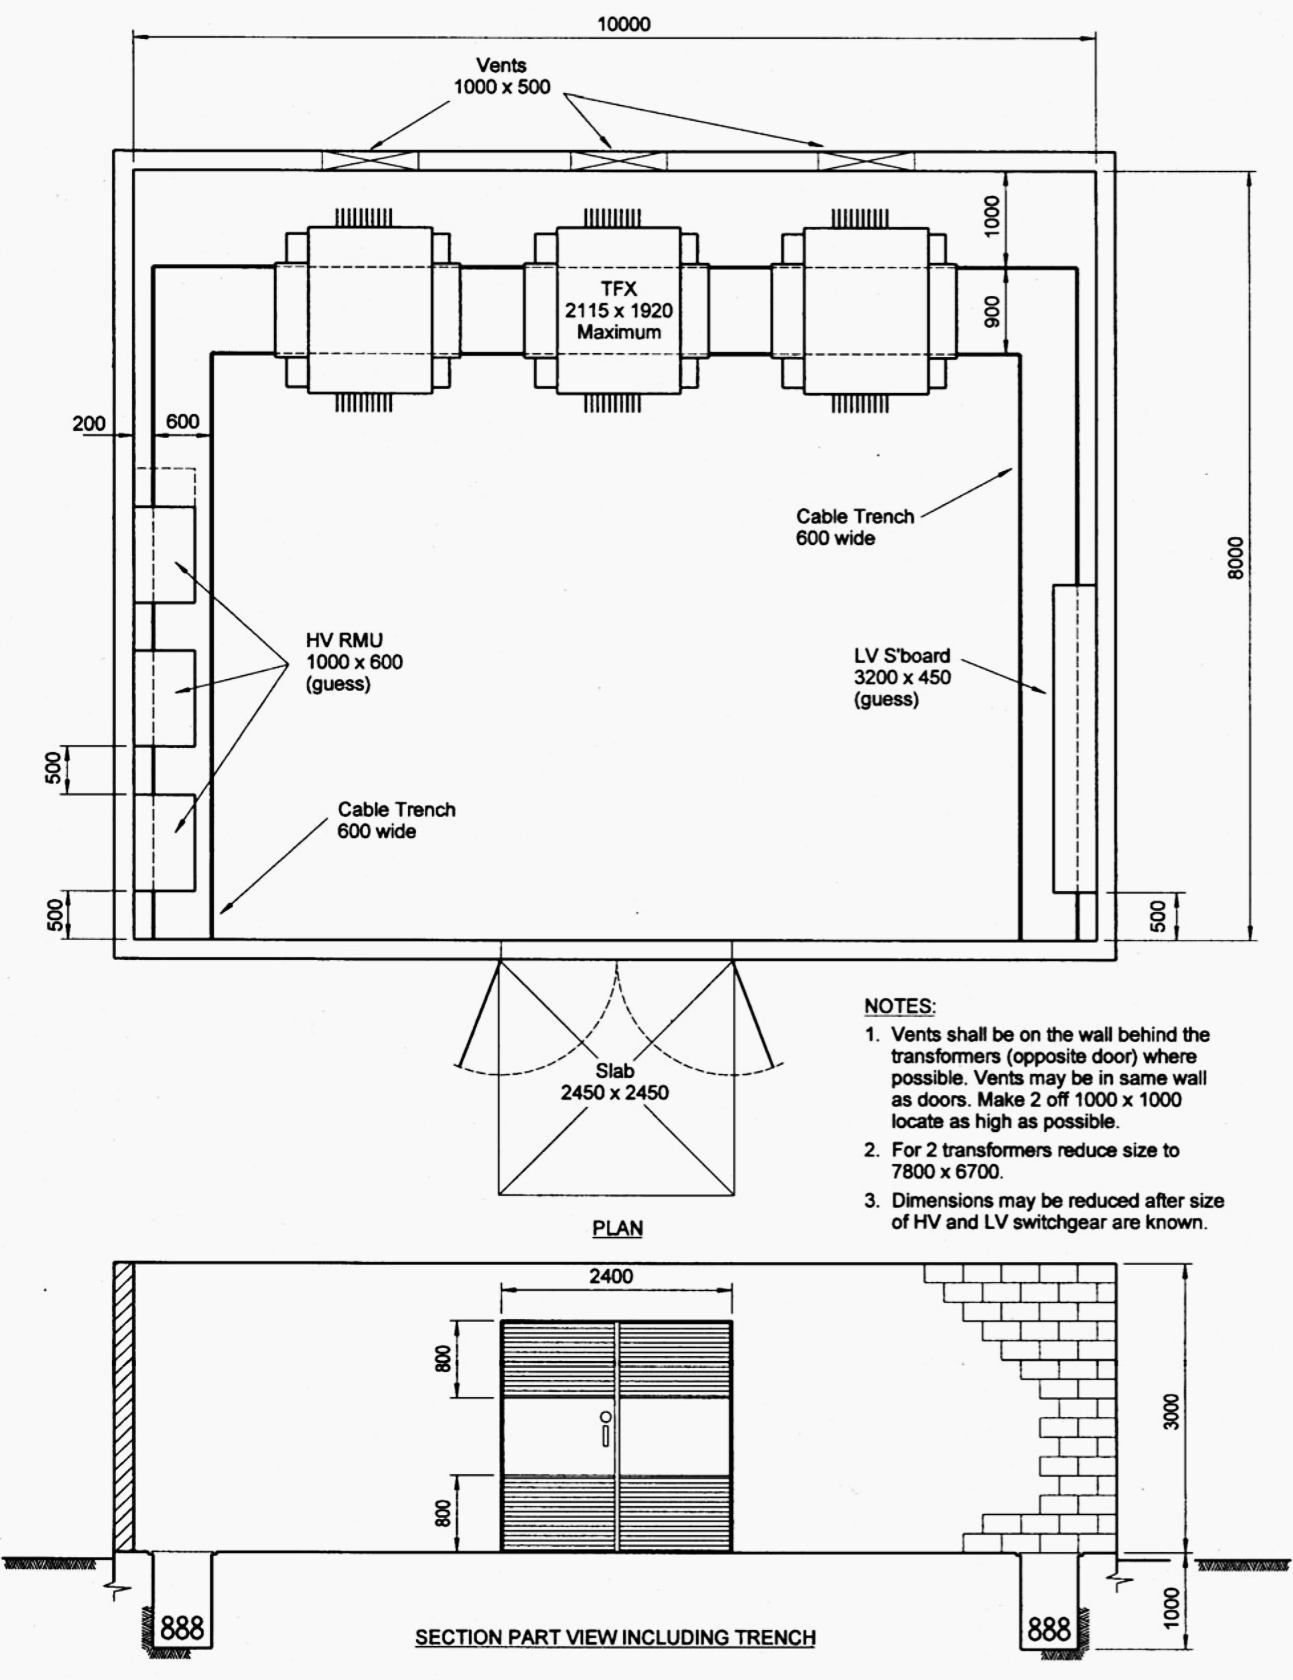 Wiring Diagram Substation 2003 Ford Focus Radio Indoor Distribution Layout With 3 Transformers